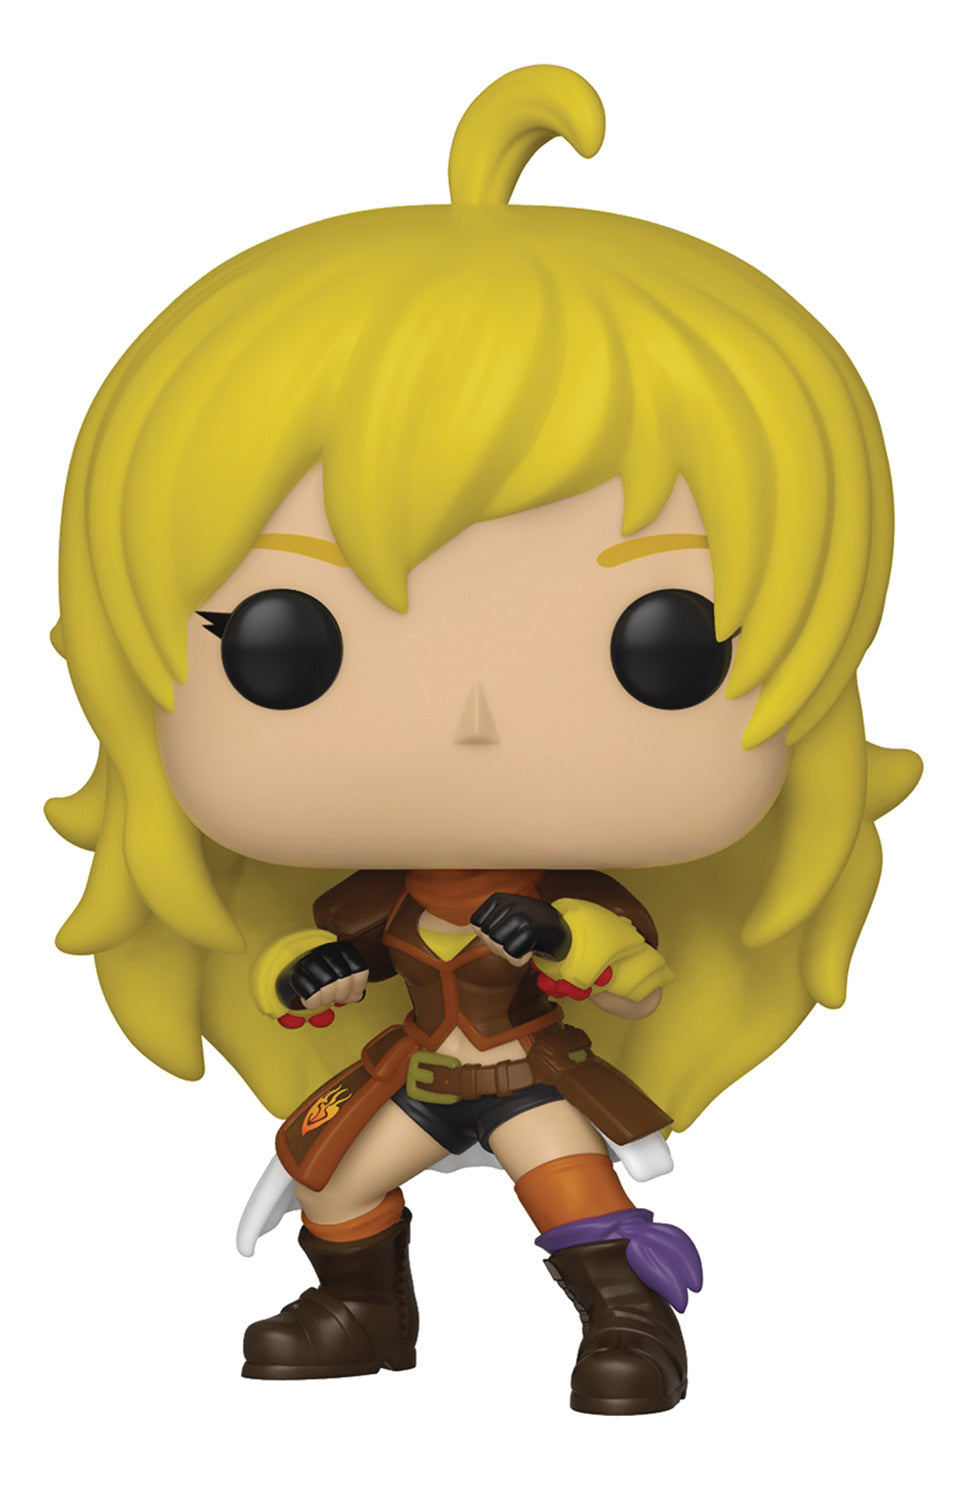 POP ANIMATION RWBY YANG XIAO LONG 3.75